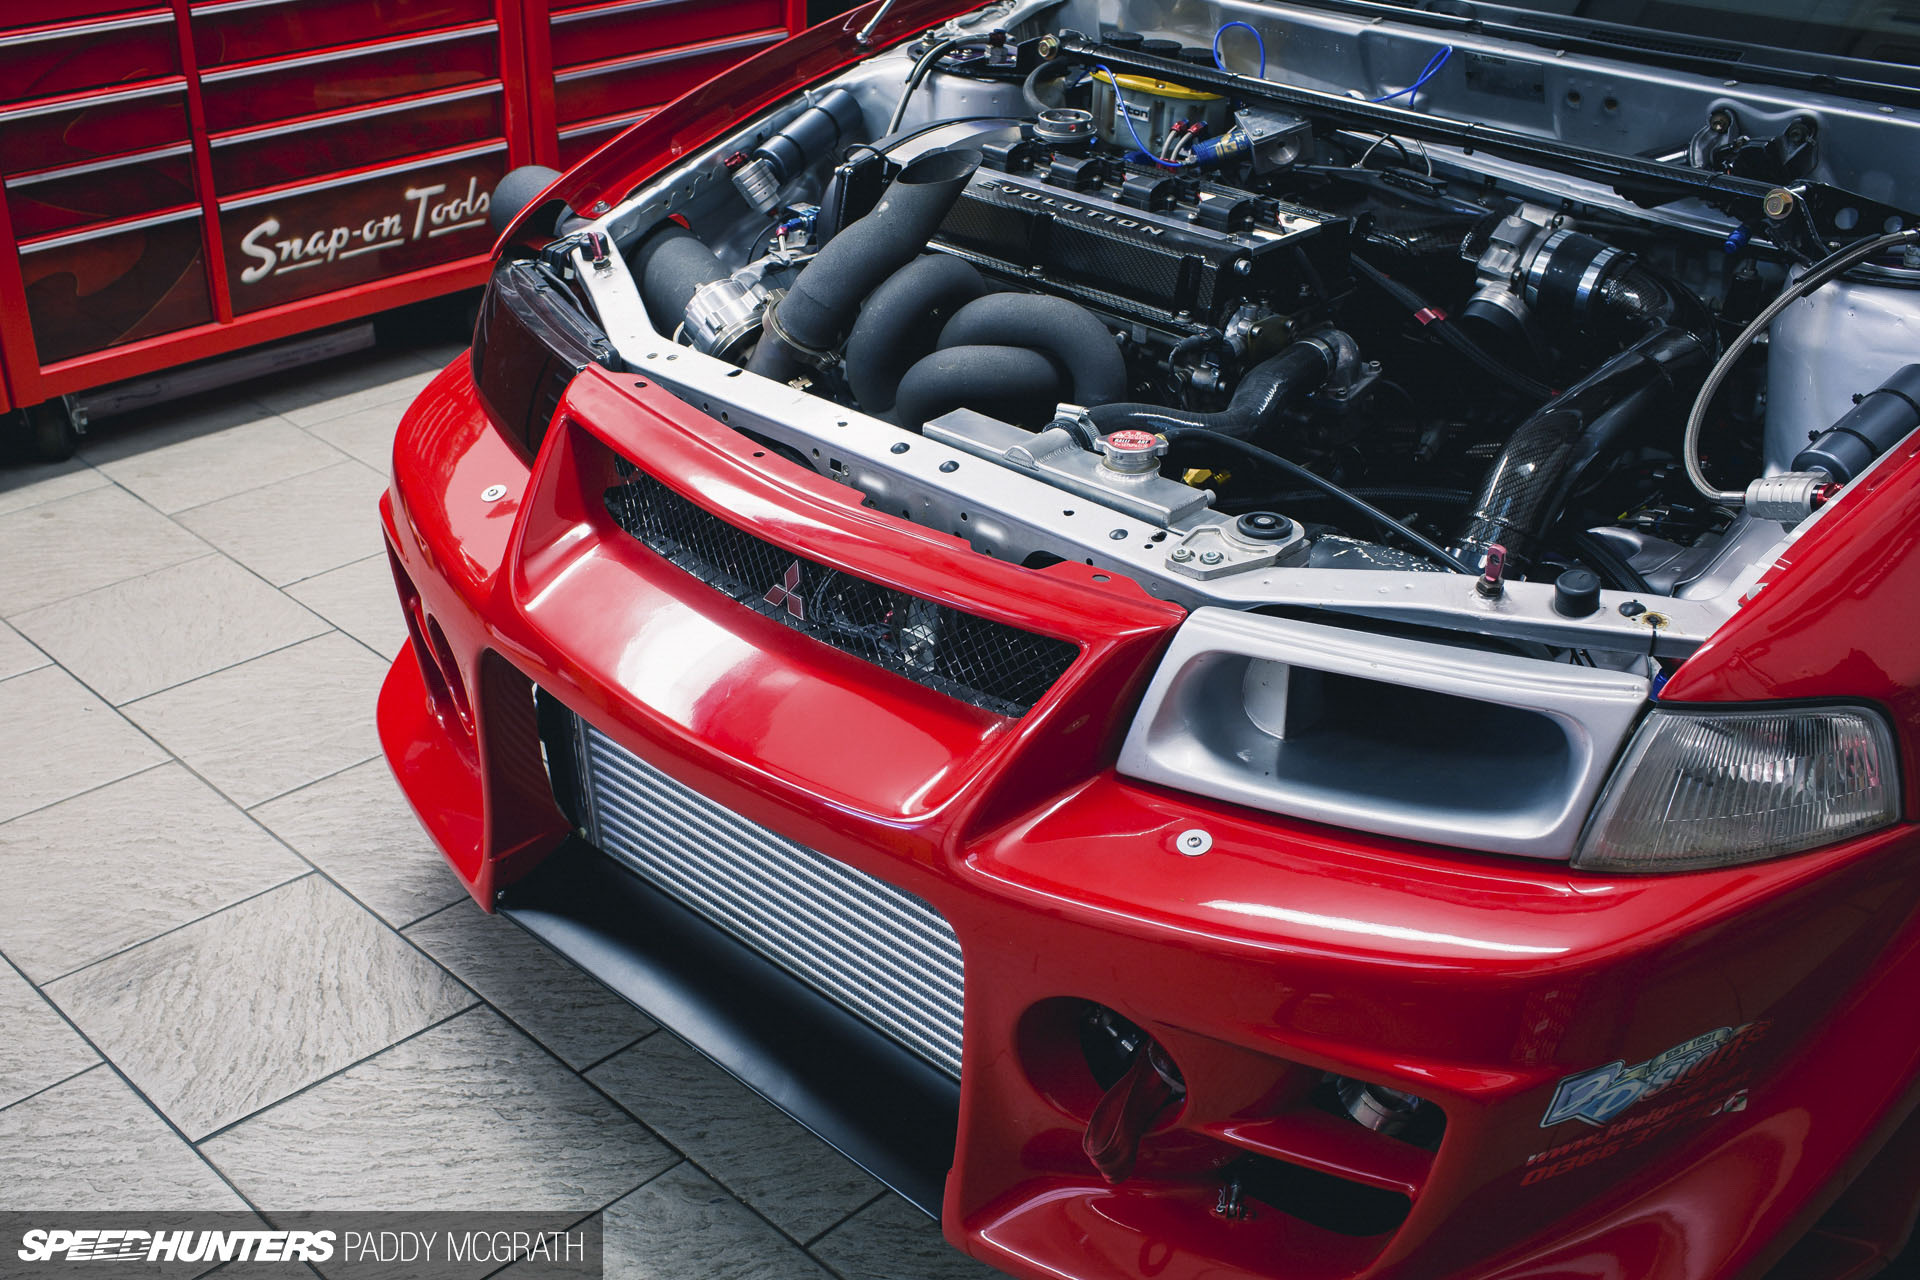 This 900hp Evo Vi Is A Ferocious 8 Second Car